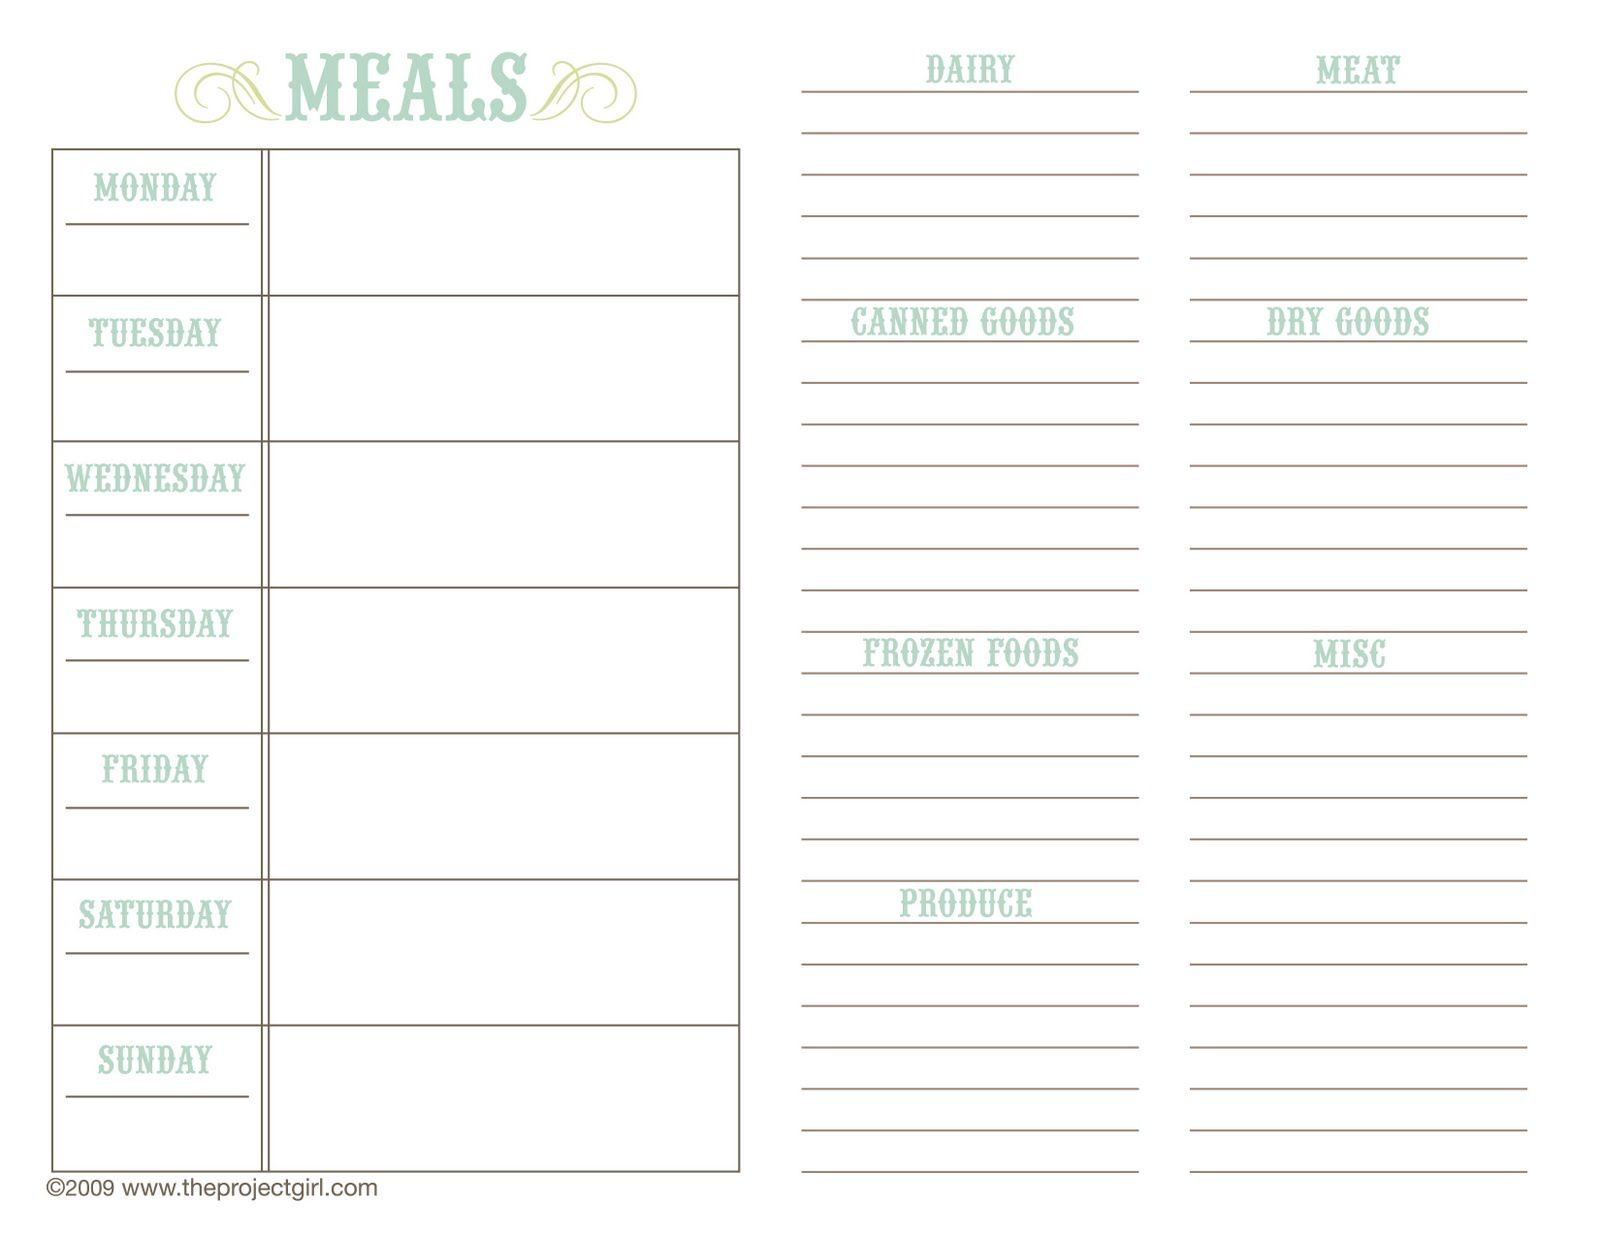 Free Family Recipe Templates  Above Templates Available For